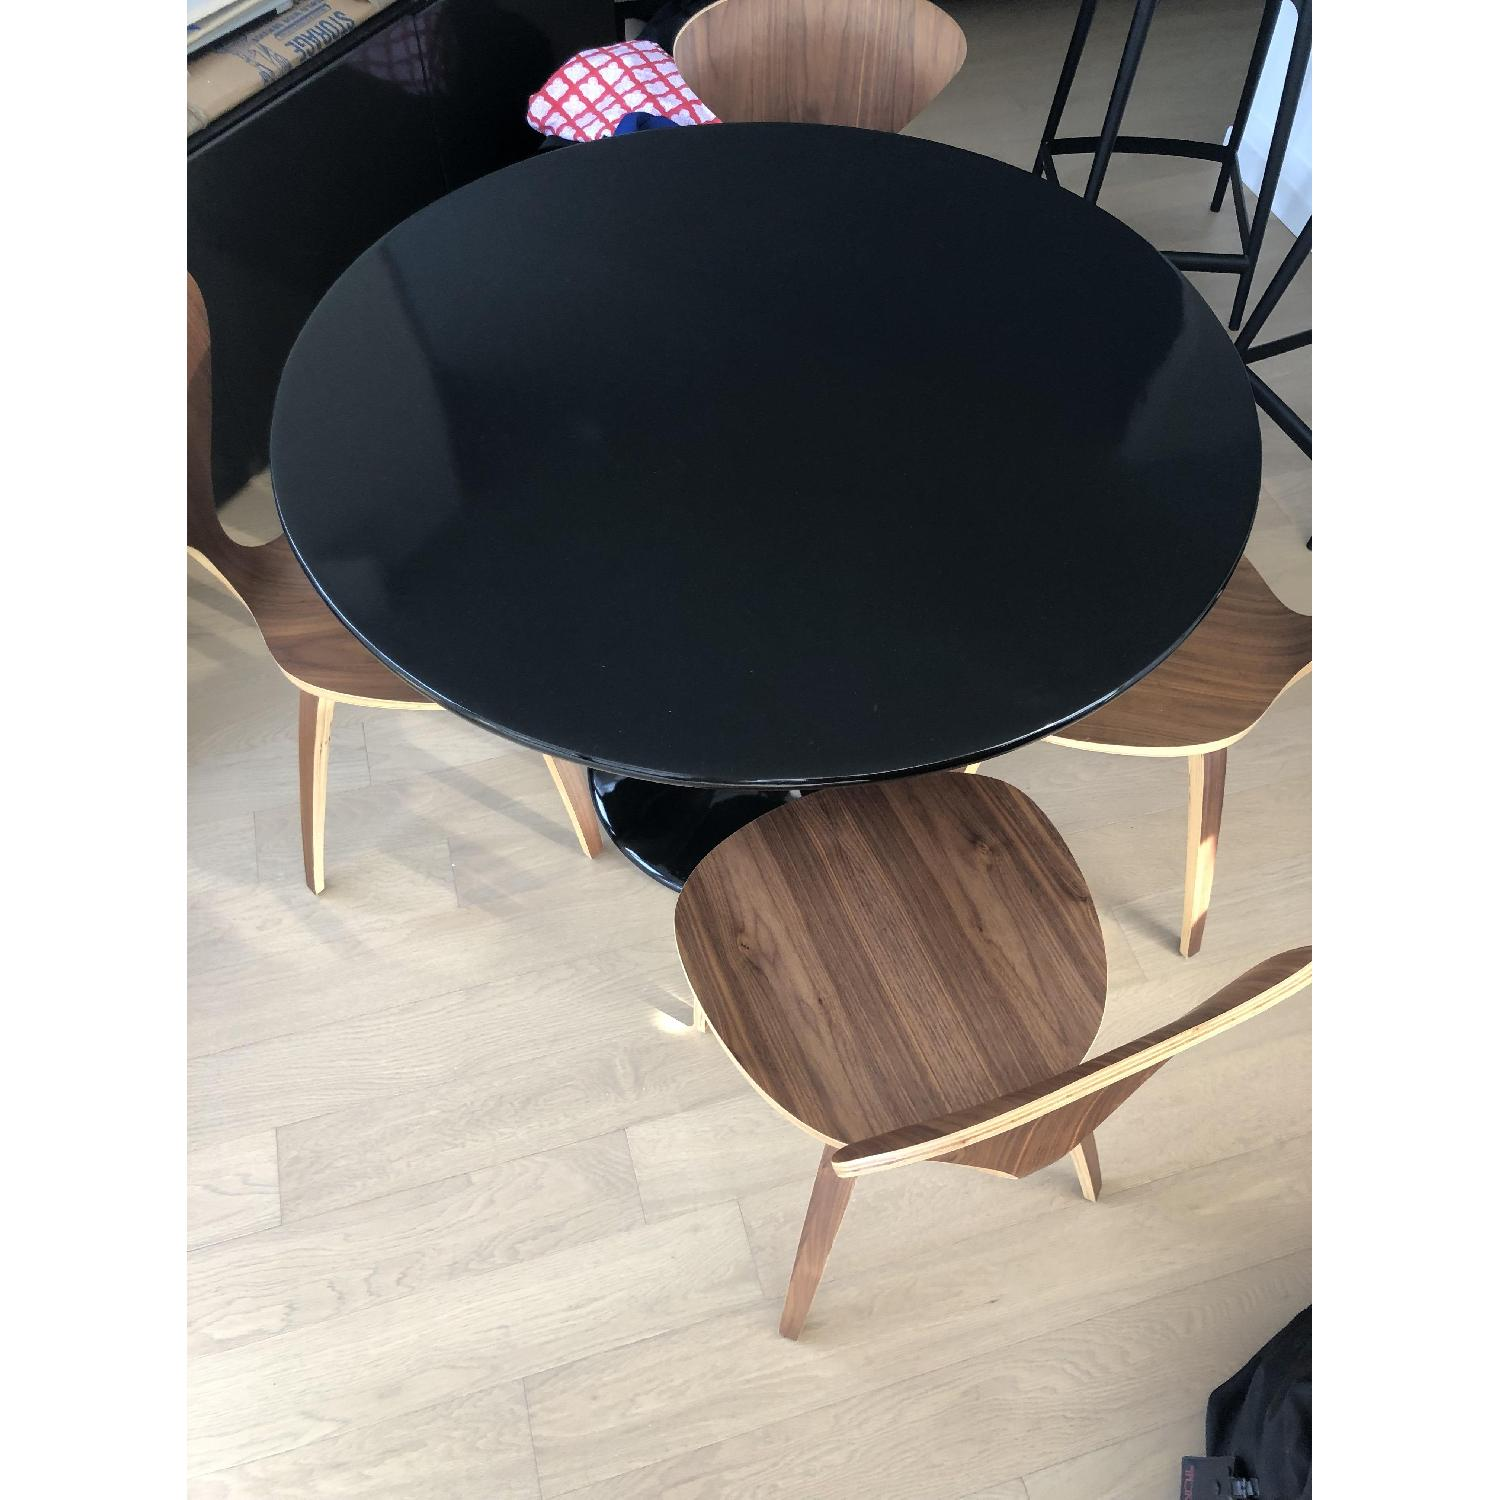 Fine Mod Imports Dining Table - image-8